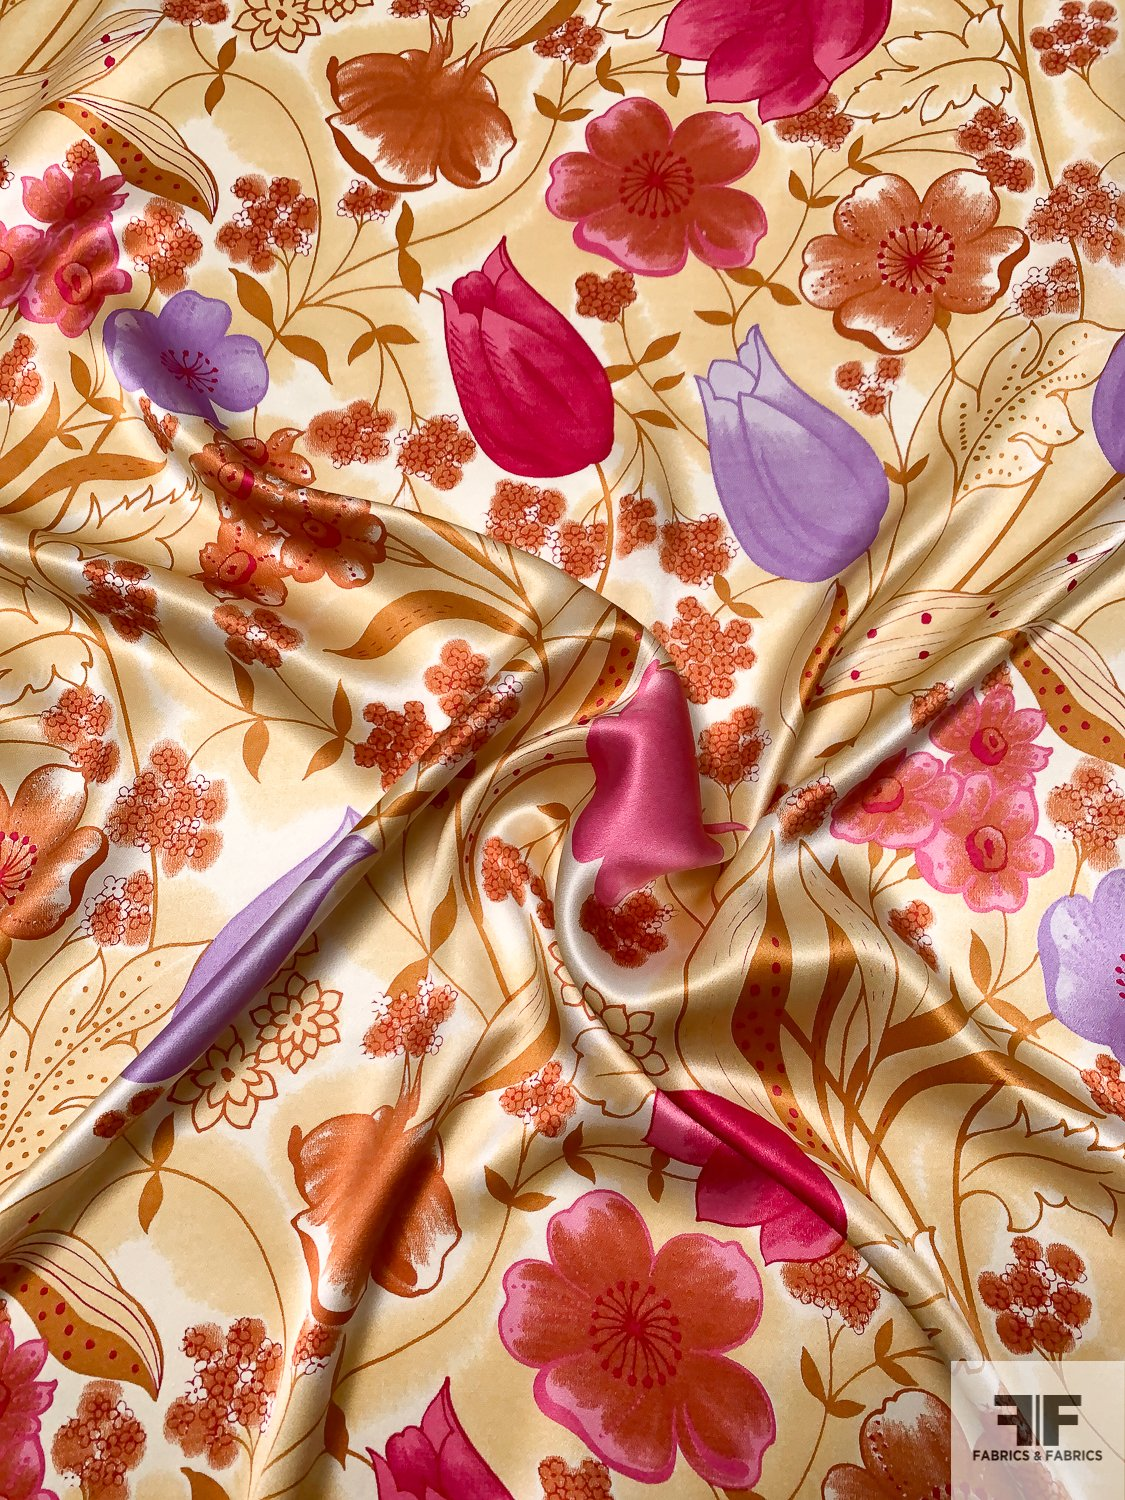 Spring in Autumn Printed Silk Charmeuse - Harvest Tan / Caramel / Magenta / Purple